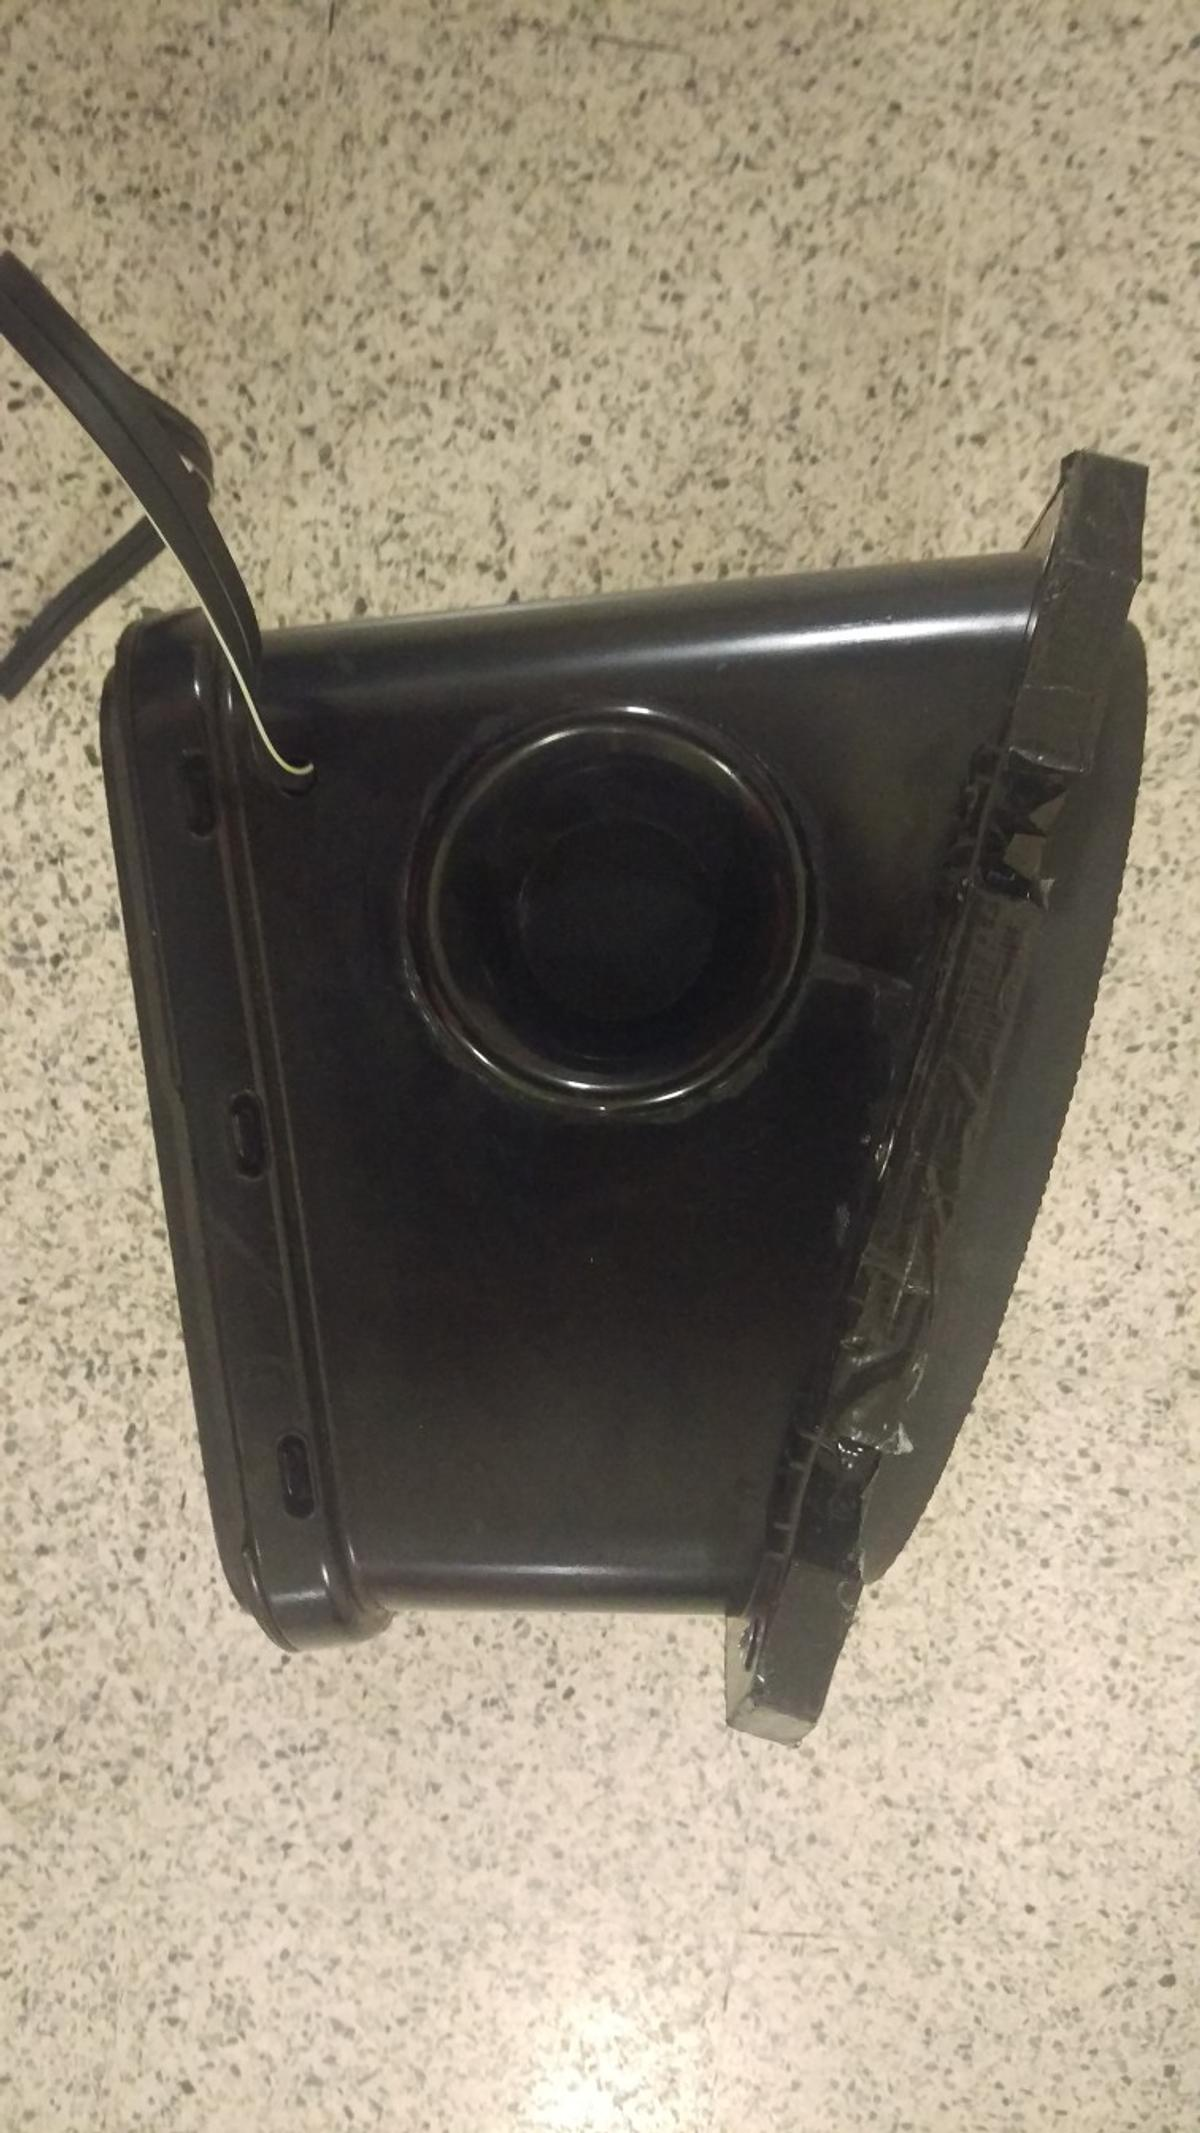 Bass box BMW E36 in E17 London for £20 00 for sale - Shpock